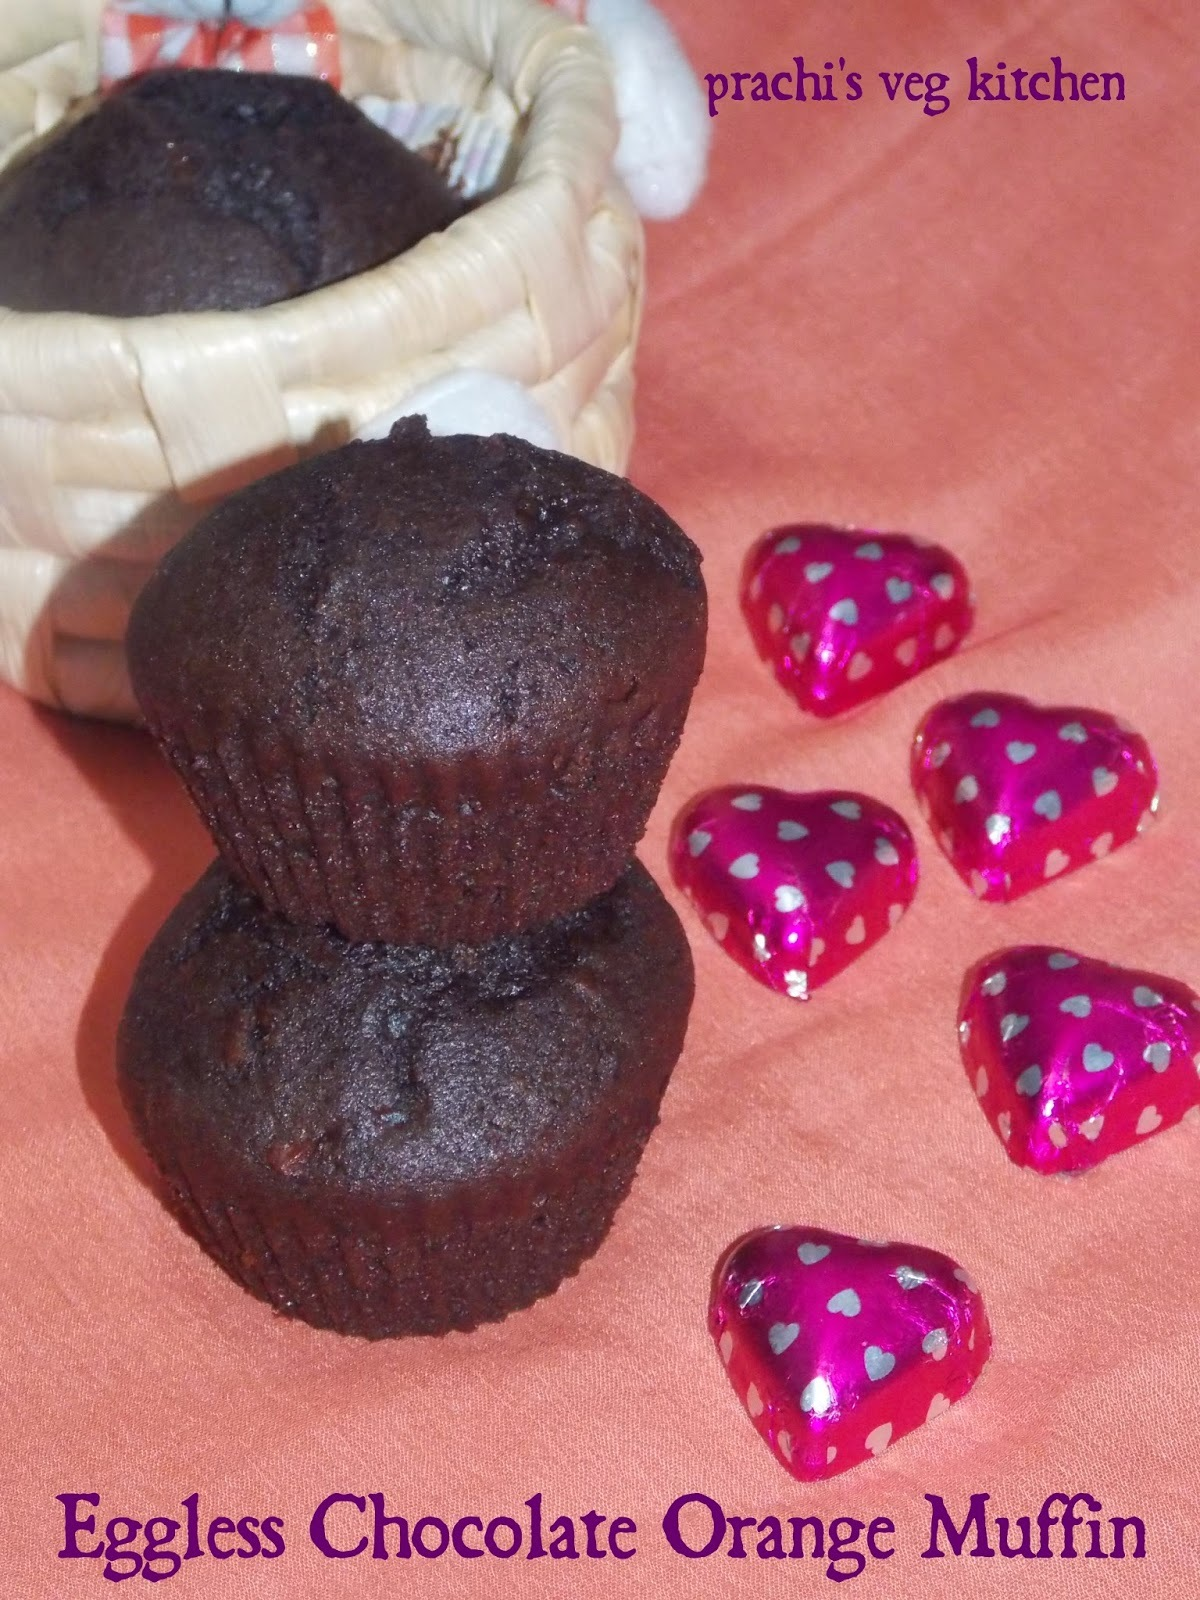 Eggless Chocolate Orange Muffin